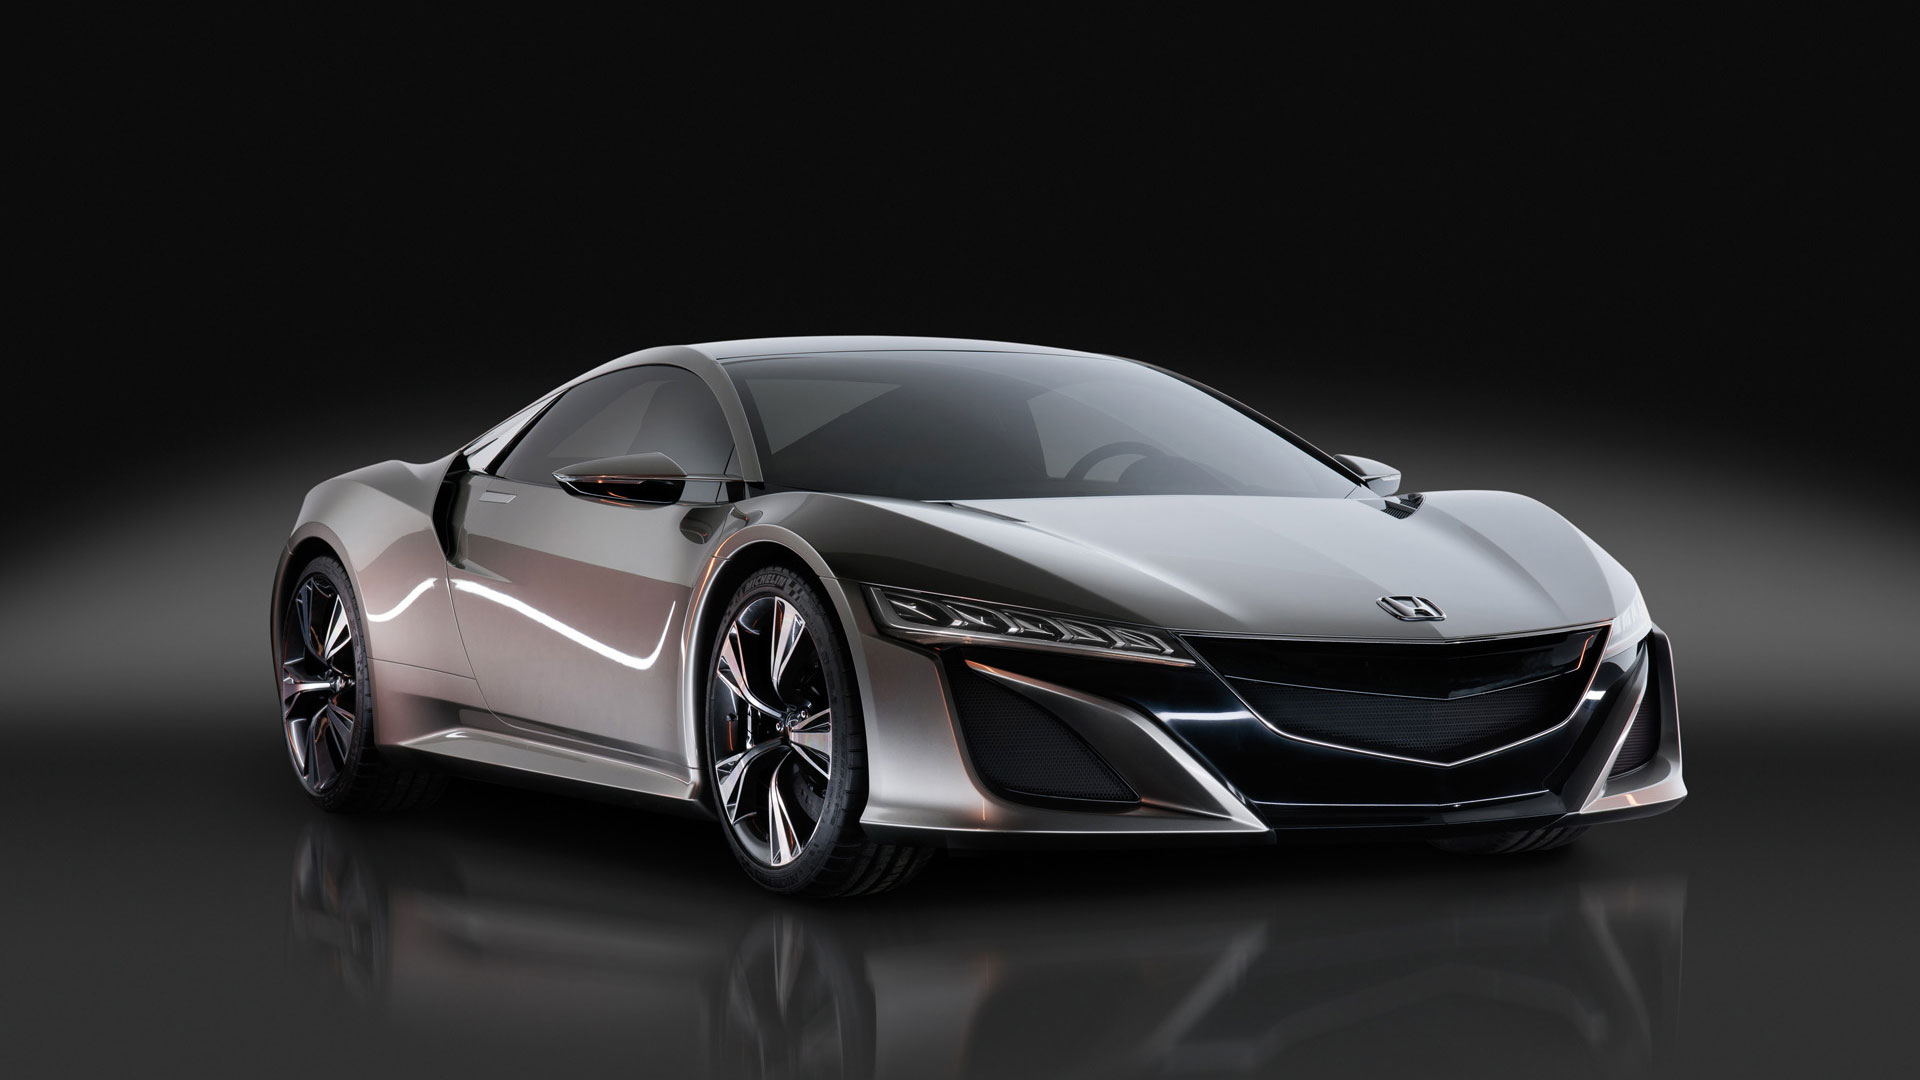 Honda Acura NSX Wallpapers PC